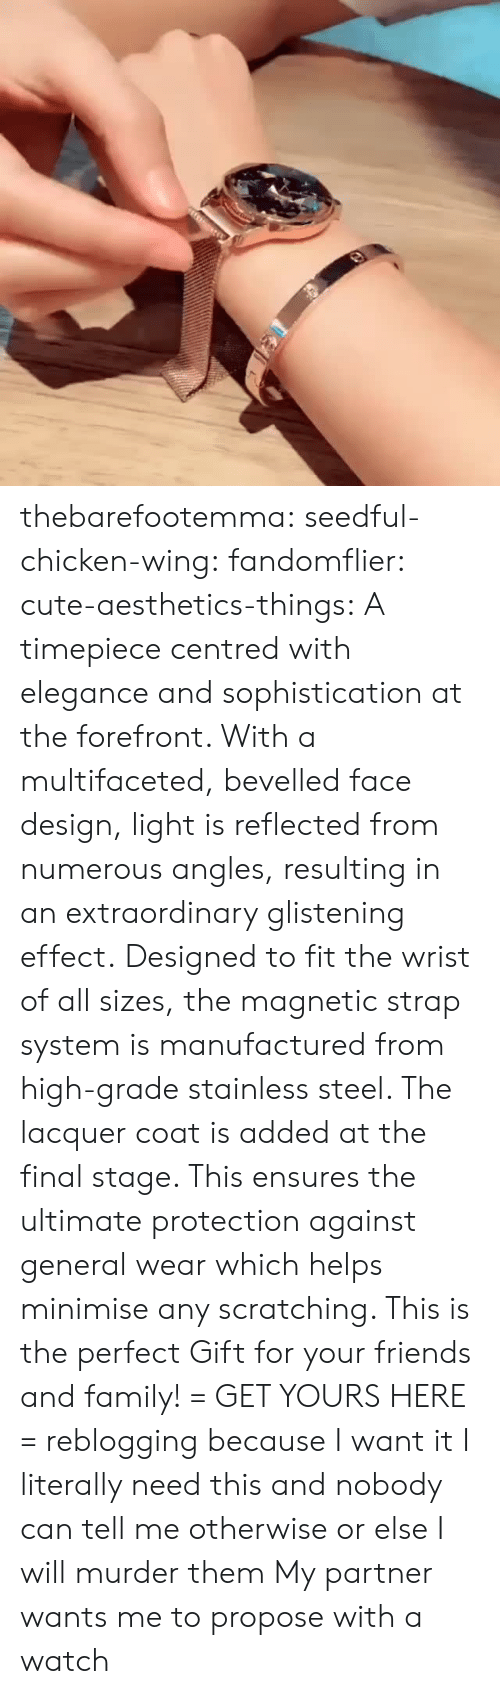 Cute, Family, and Friends: thebarefootemma: seedful-chicken-wing:   fandomflier:  cute-aesthetics-things:   A timepiece centred with elegance and sophistication at the forefront. With a multifaceted, bevelled face design, light is reflected from numerous angles, resulting in an extraordinary glistening effect. Designed to fit the wrist of all sizes, the magnetic strap system is manufactured from high-grade stainless steel. The lacquer coat is added at the final stage. This ensures the ultimate protection against general wear which helps minimise any scratching. This is the perfect Gift for your friends and family! = GET YOURS HERE =   reblogging because I want it  I literally need this and nobody can tell me otherwise or else I will murder them   My partner wants me to propose with a watch